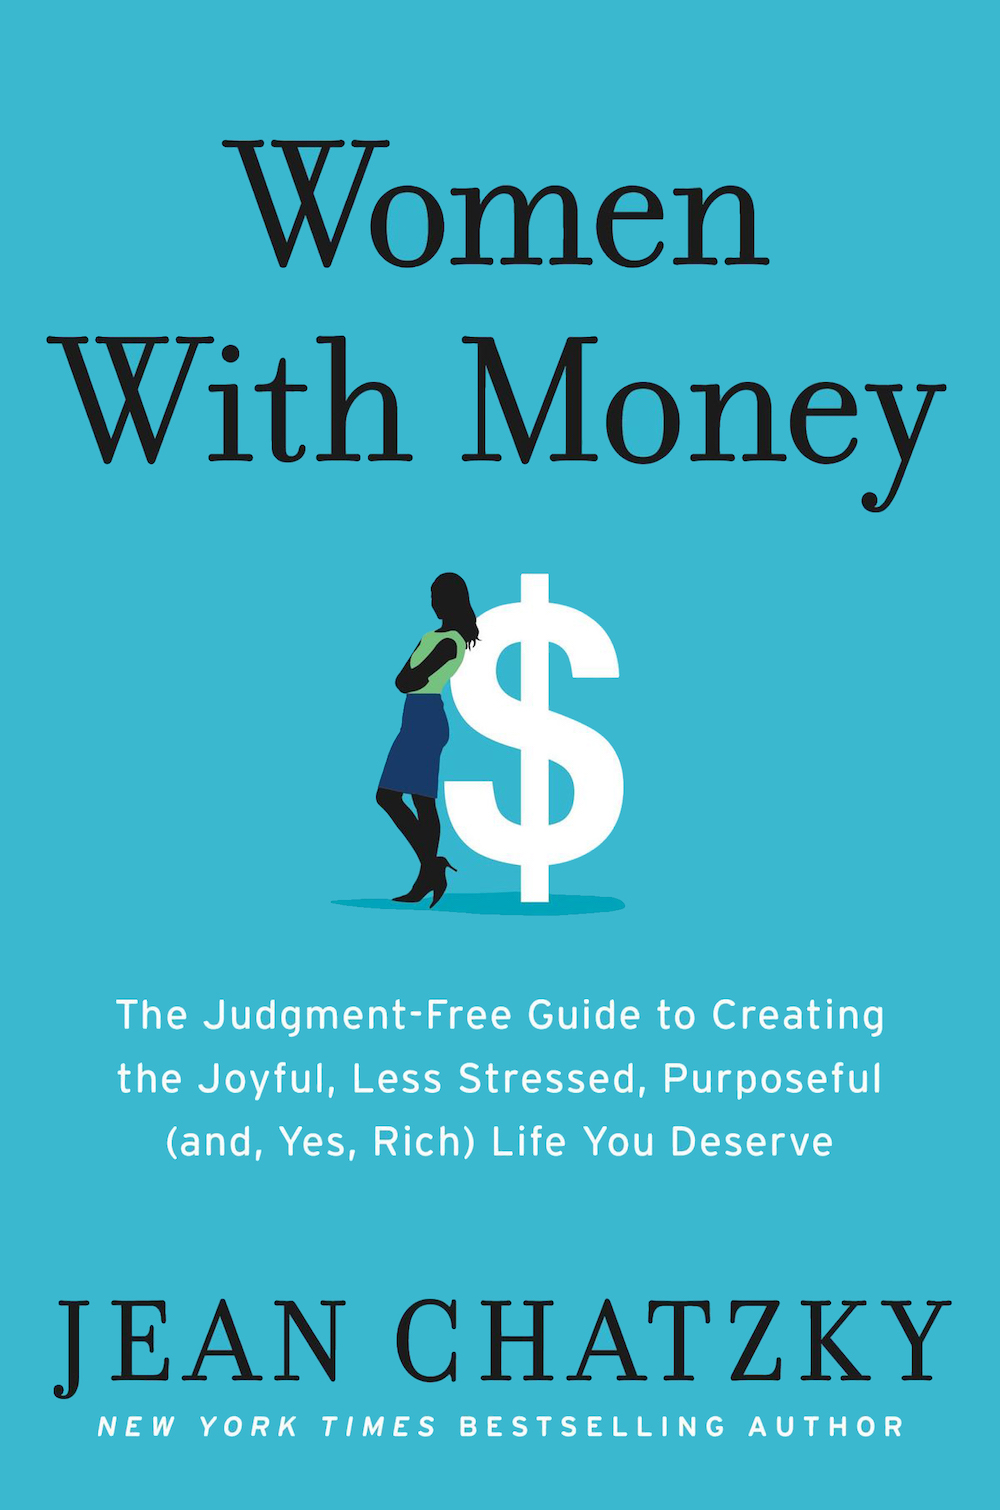 Jean Chatzky's book Women with Money